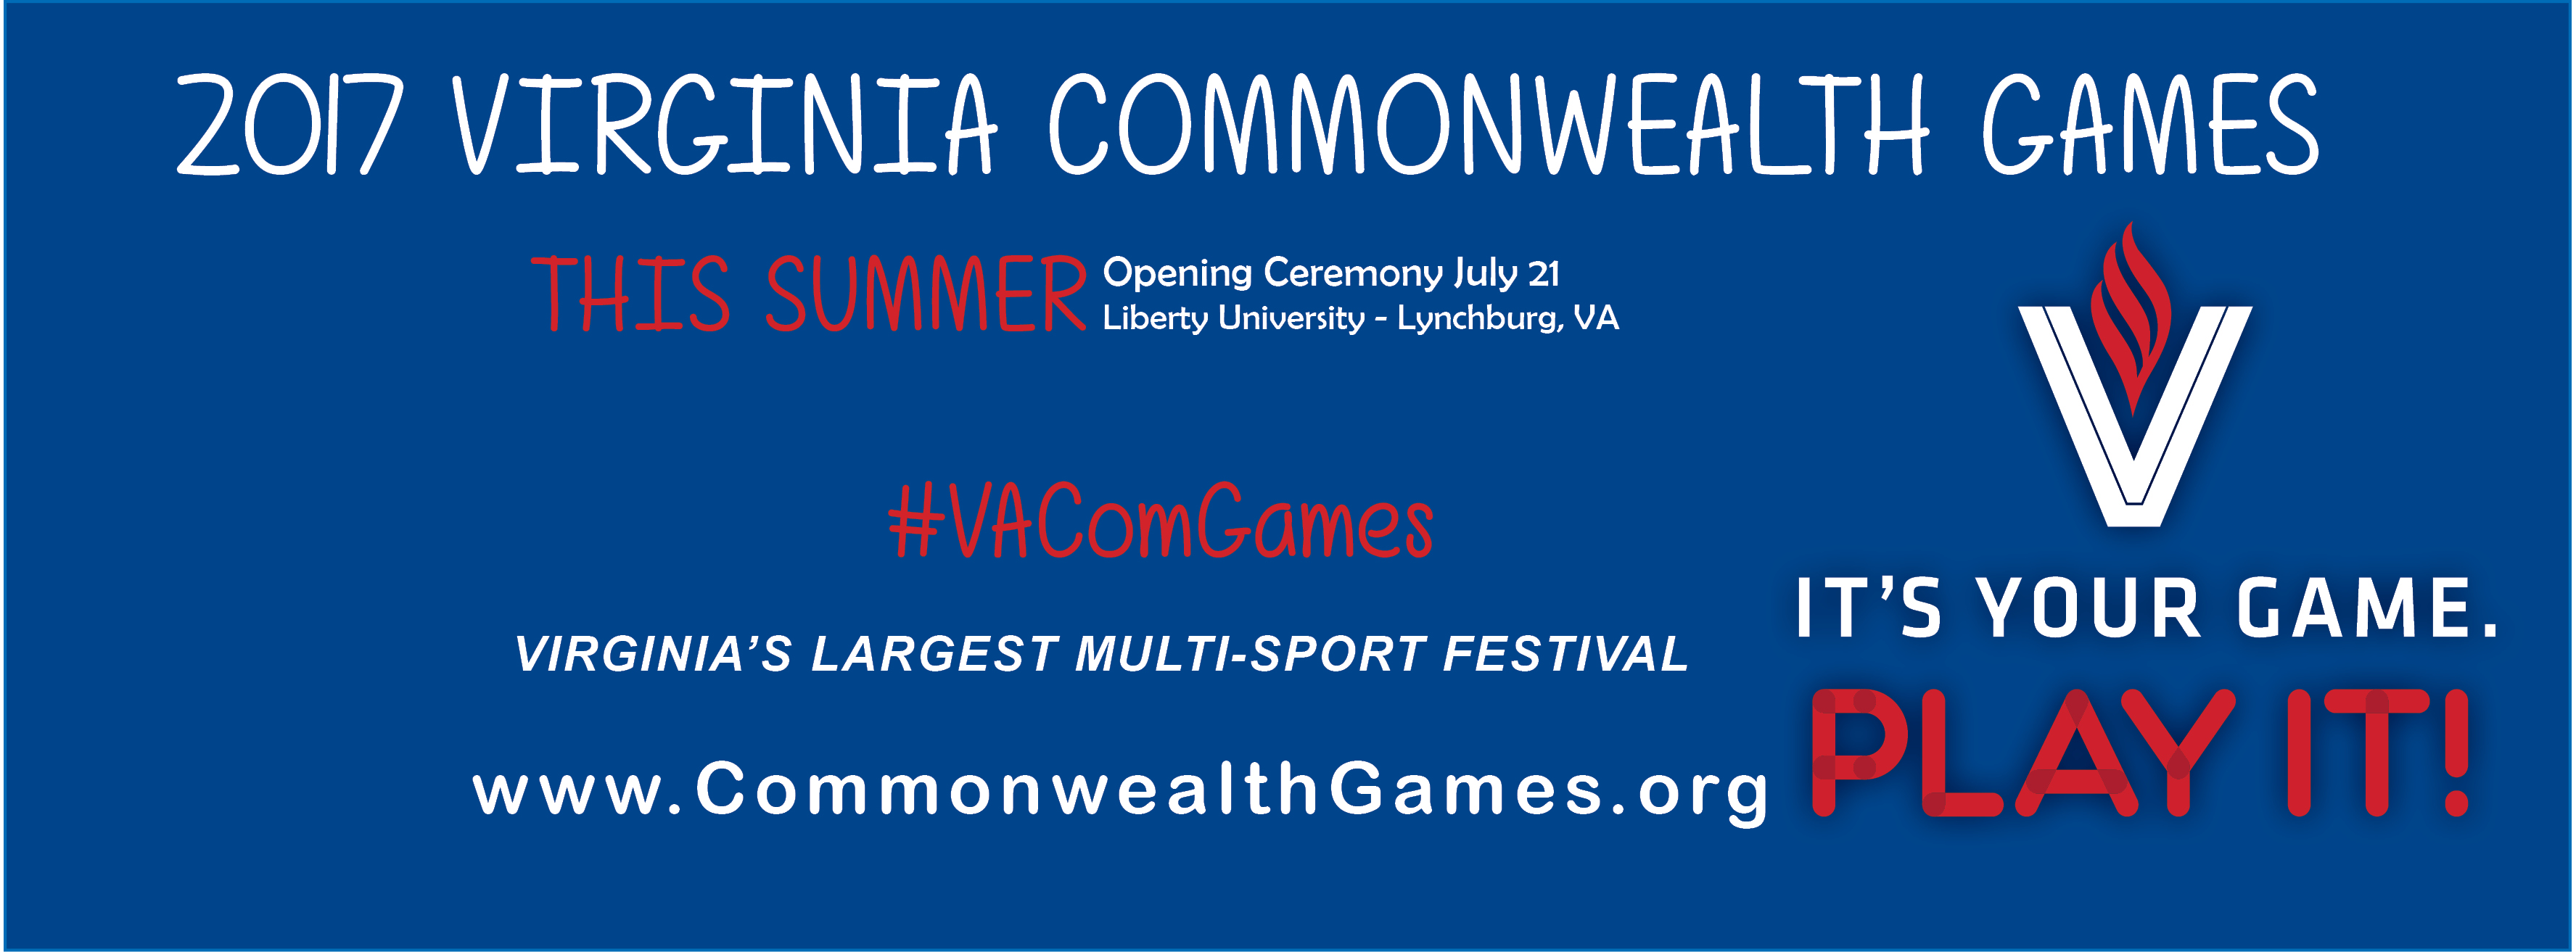 2017 Virginia Commonwealth Games at Liberty University